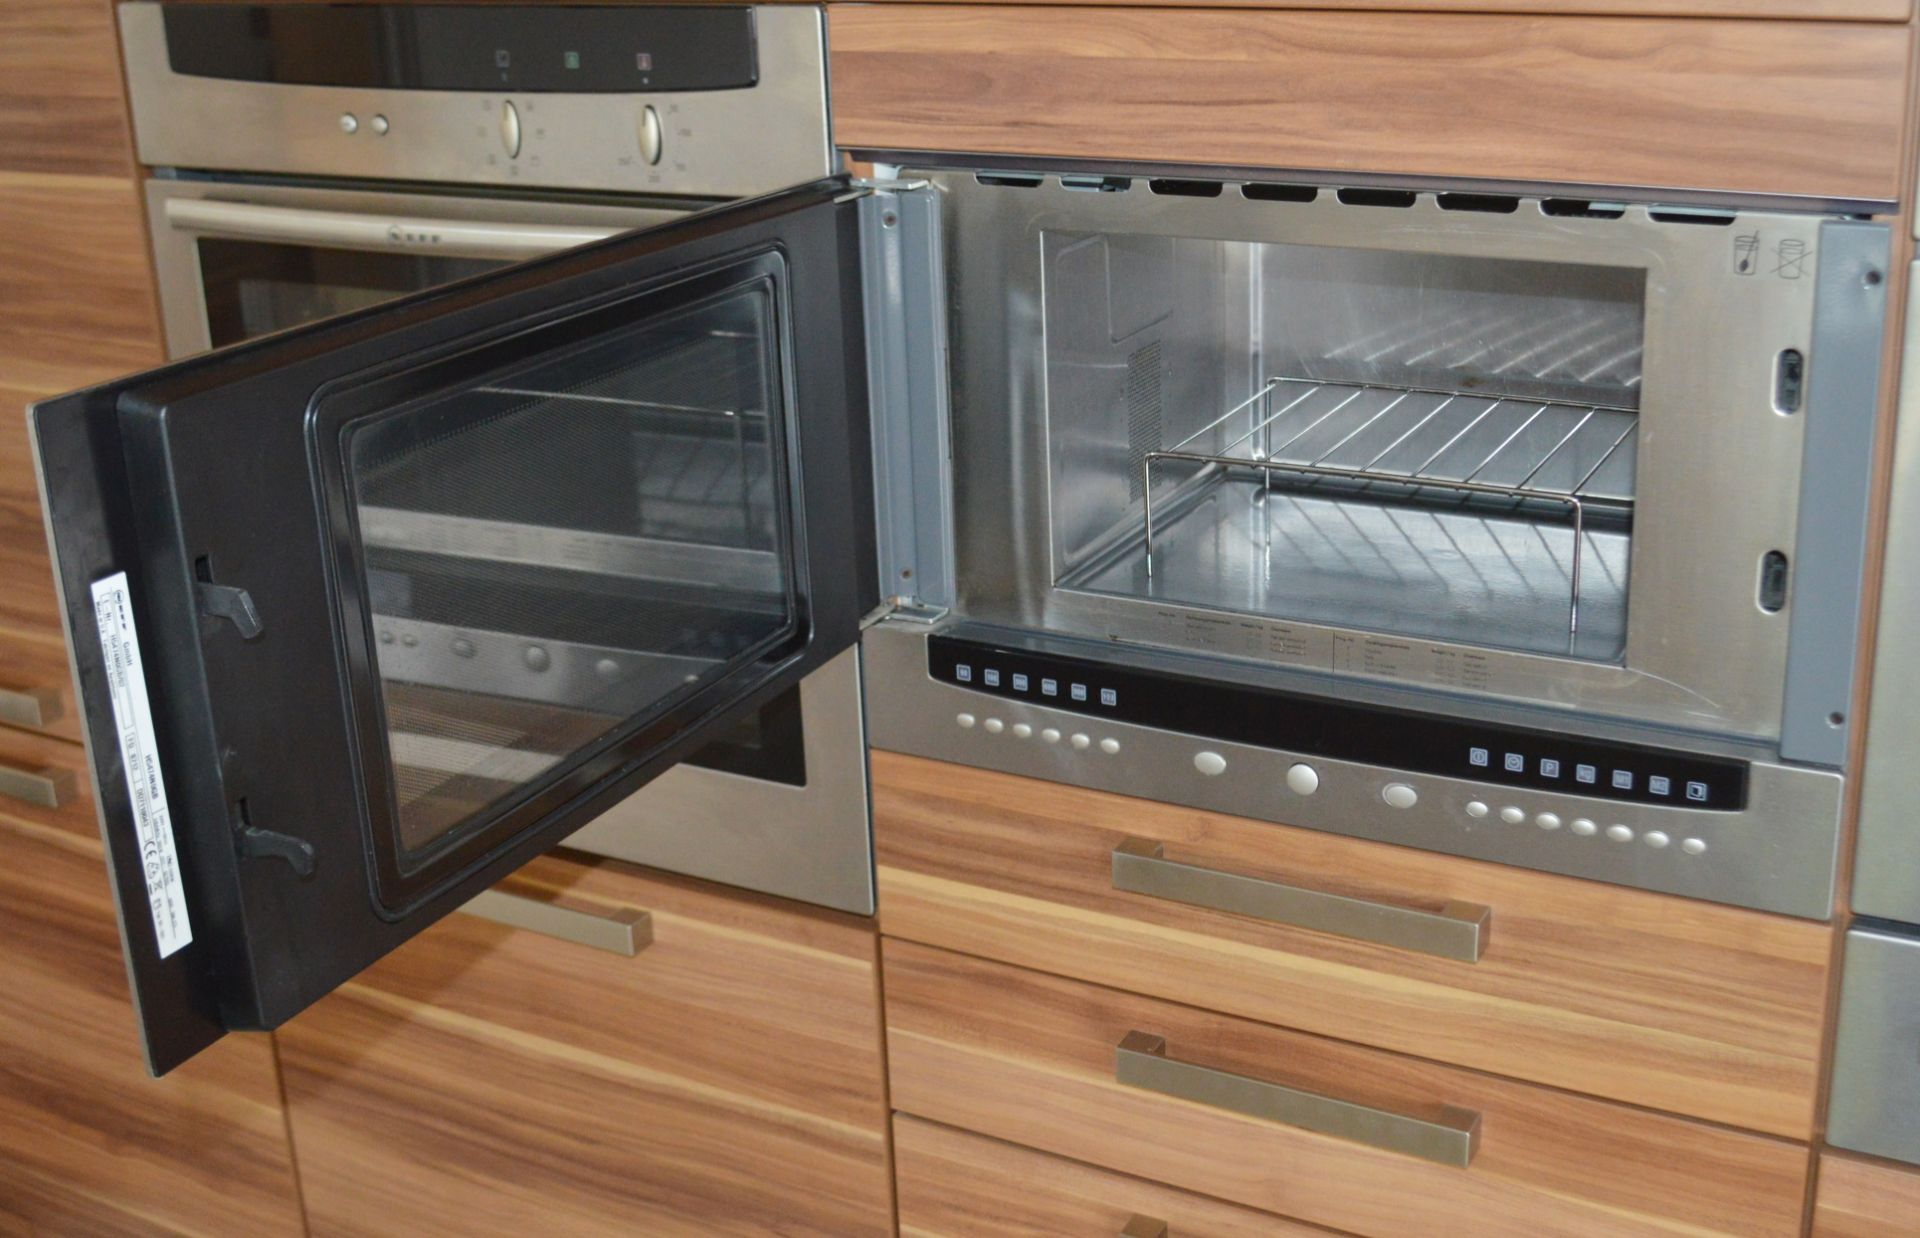 1 x Contemporary Bespoke Fitted Kitchen With Integrated Neff Branded Appliances, Quartz Worktops - Image 13 of 52